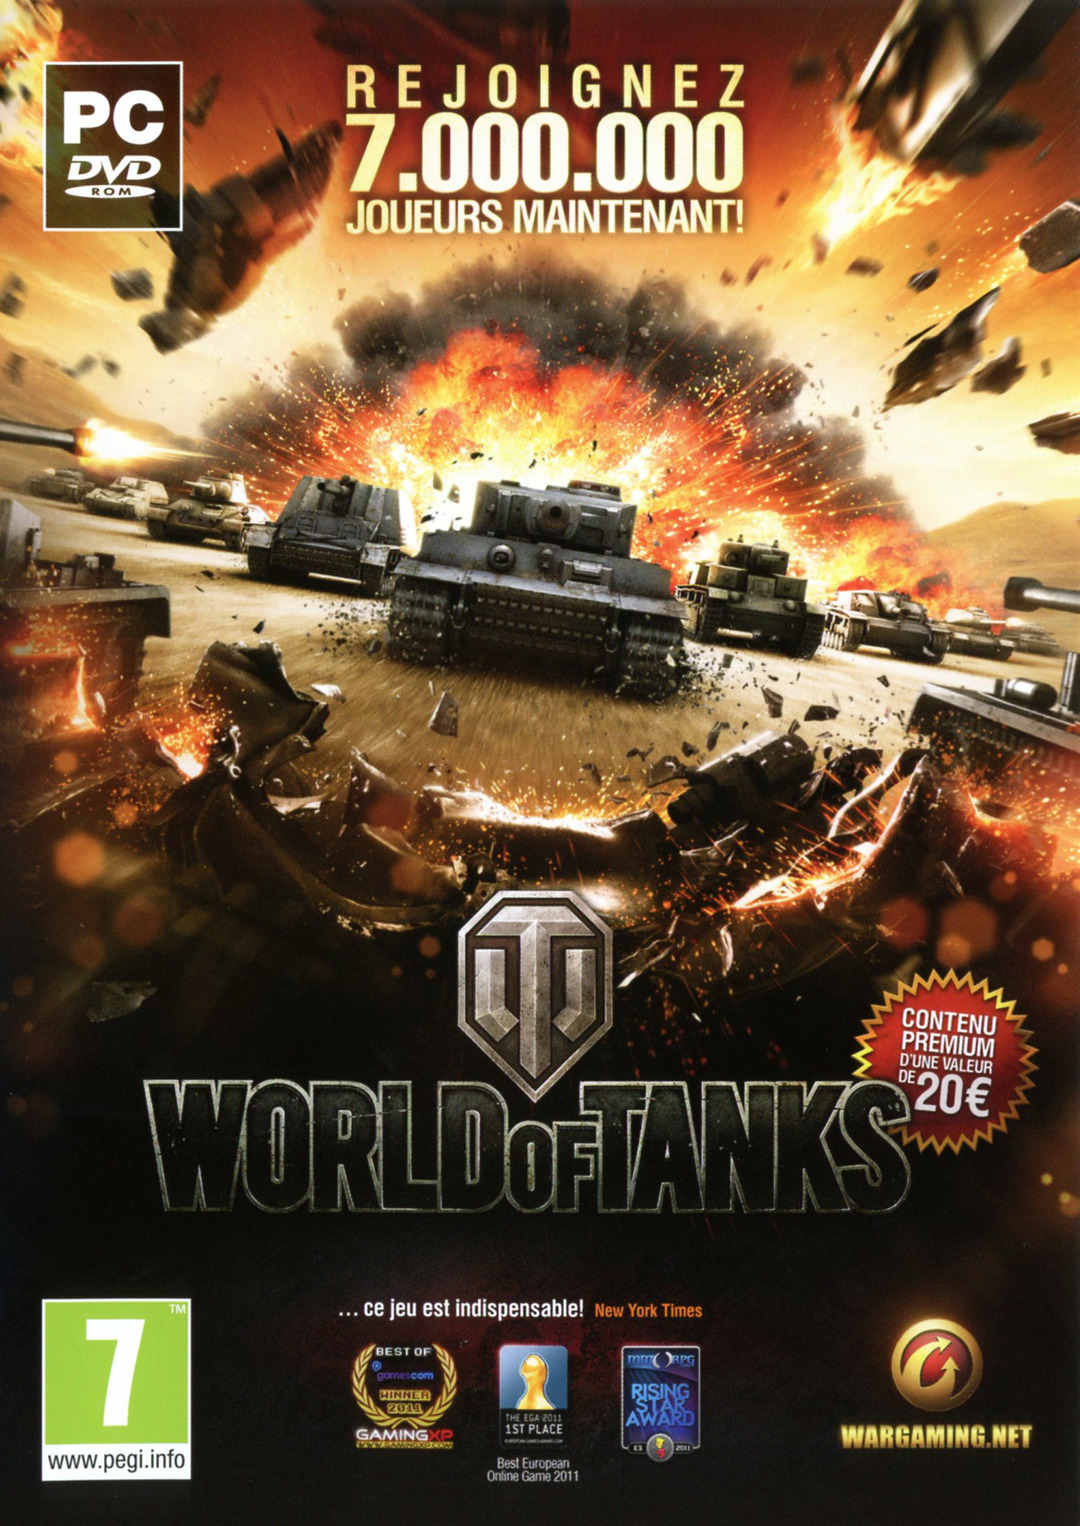 Fifa 14 Cover Xbox One World of Tanks sur PC ...